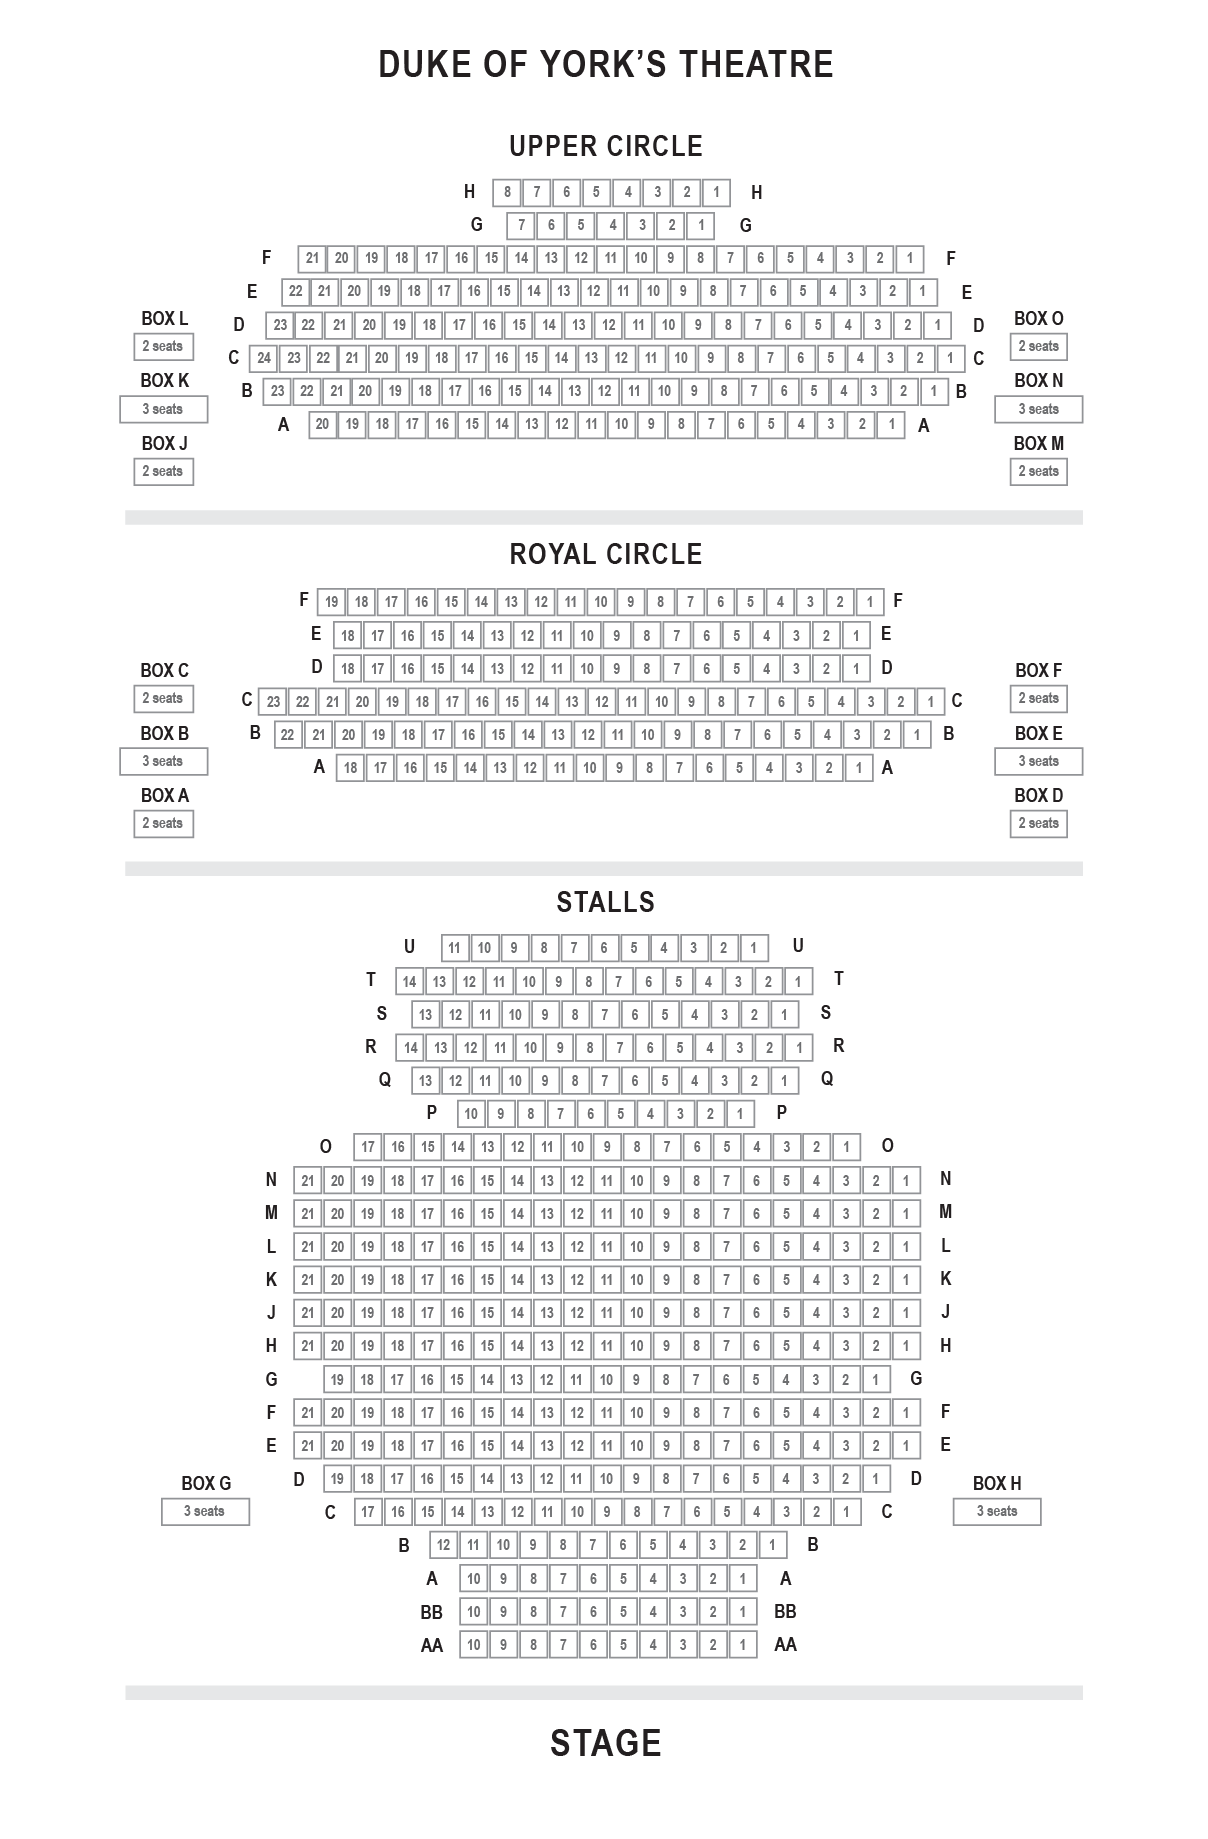 Duke of York's Theatre seating plan